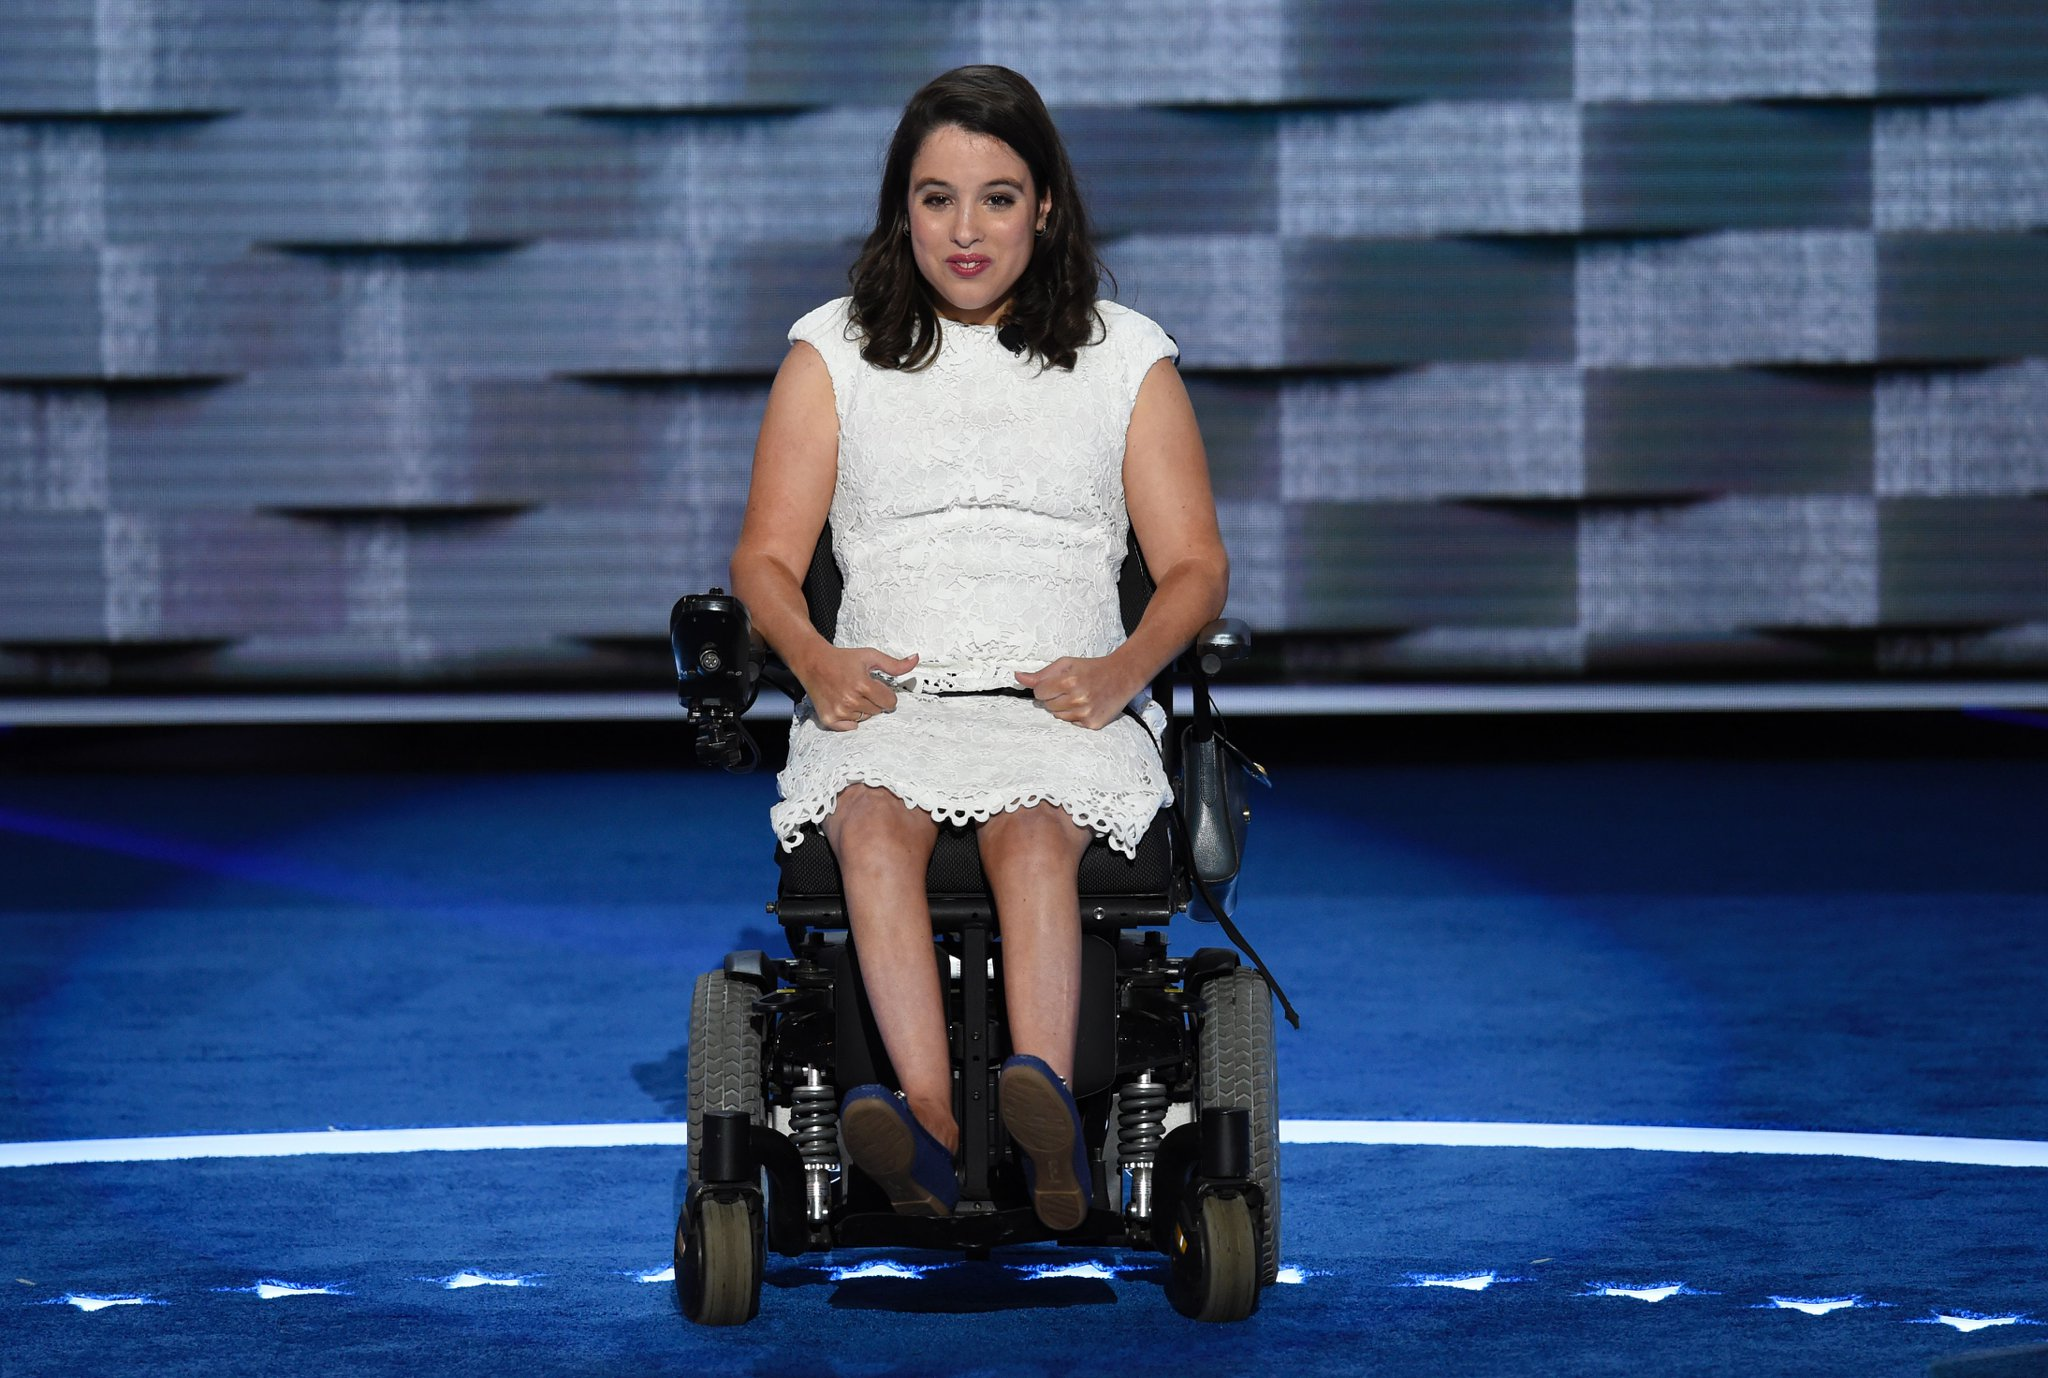 Disability Rights Advocate Reminds Donald Trump That His Mockery Offends Real People